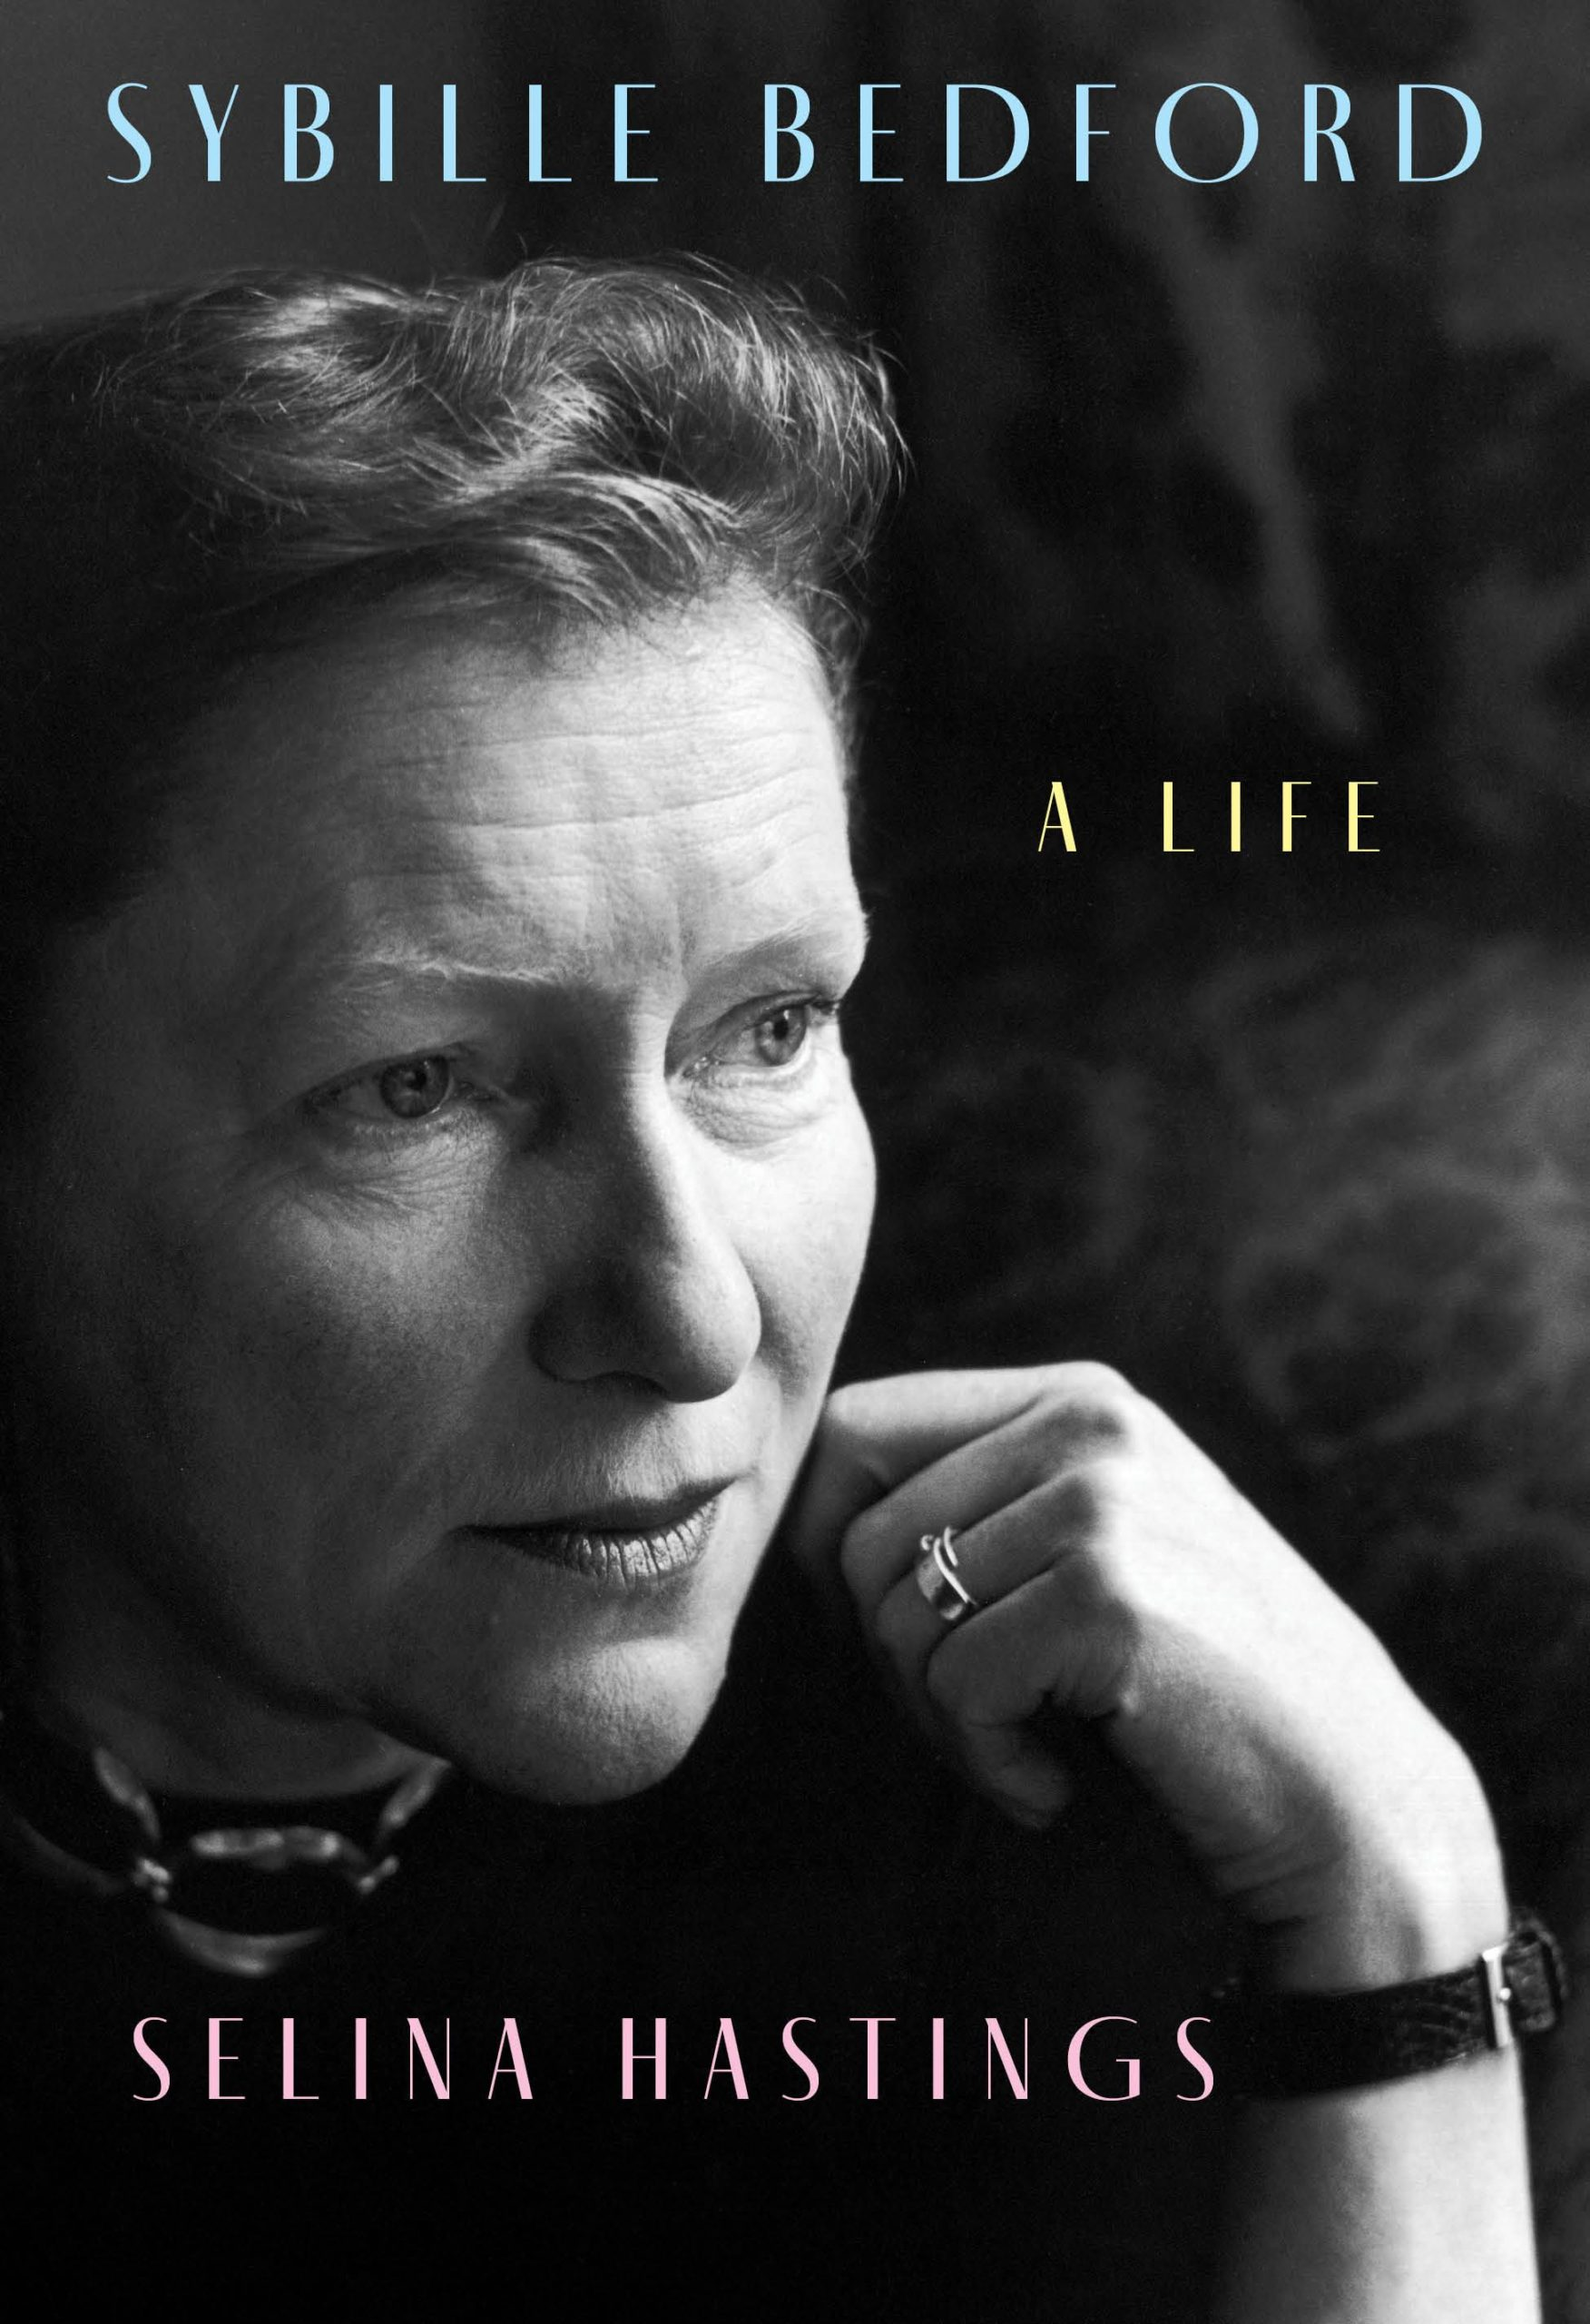 Sybille Bedford: A Life